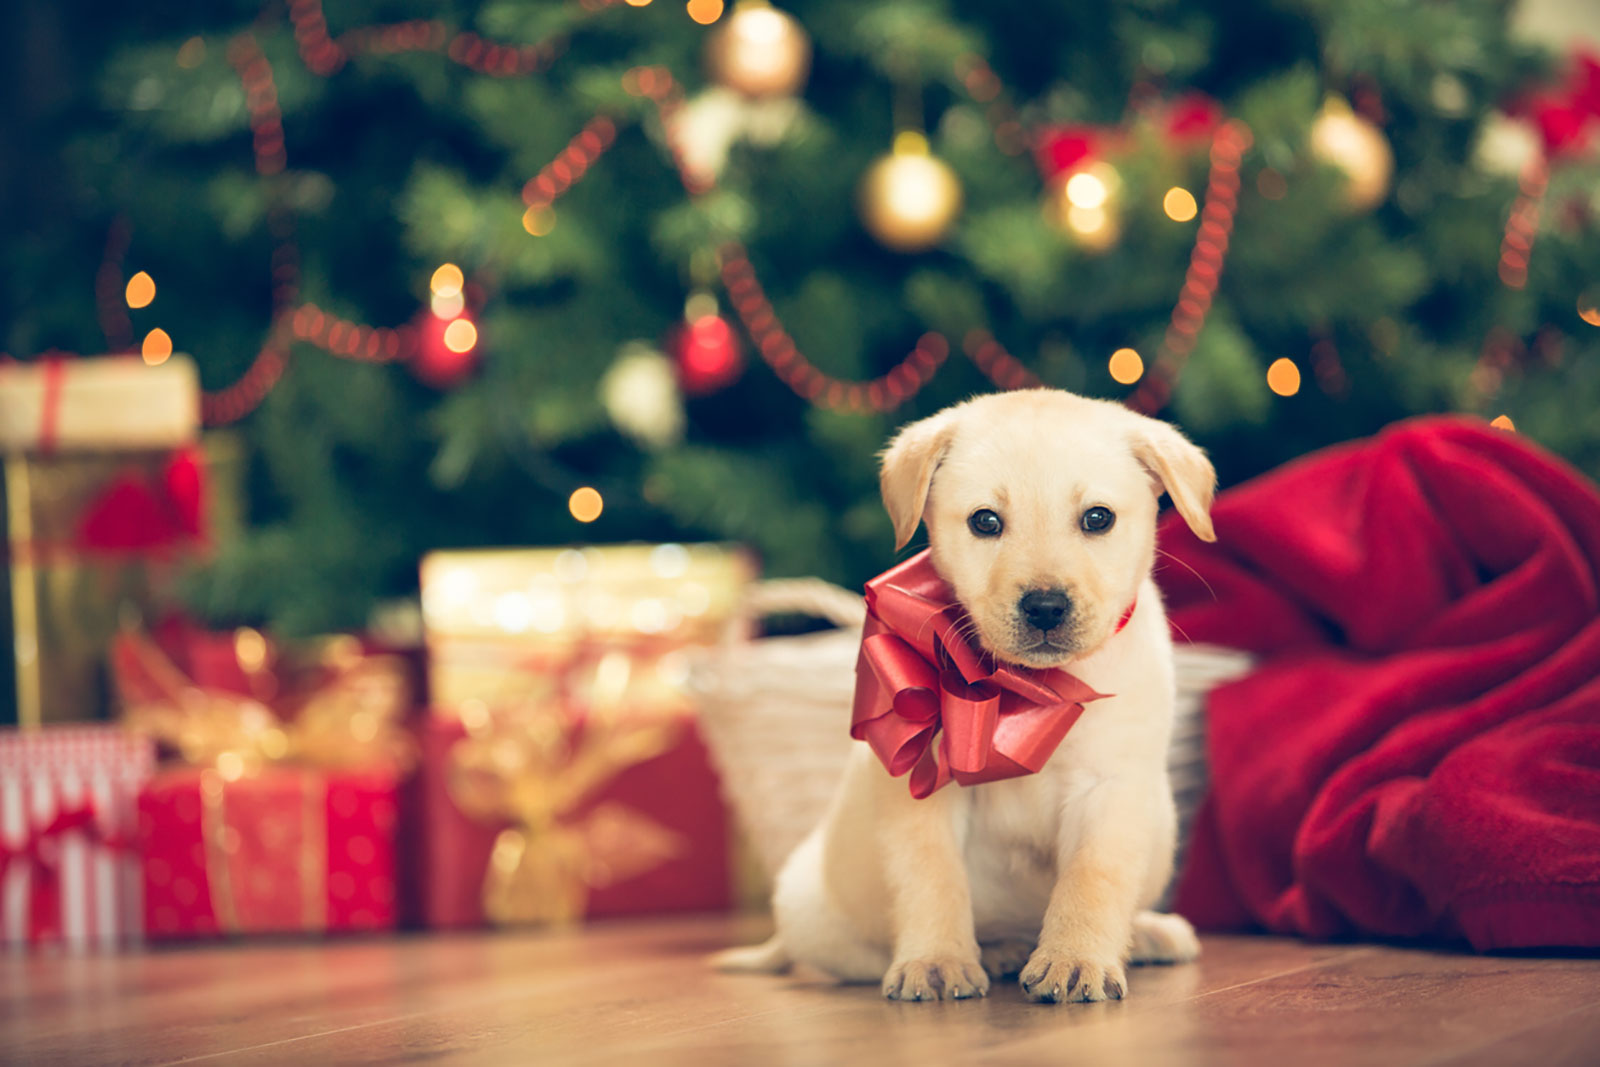 A Puppy For Christmas.A Puppy At Christmas Time Lovetoknow